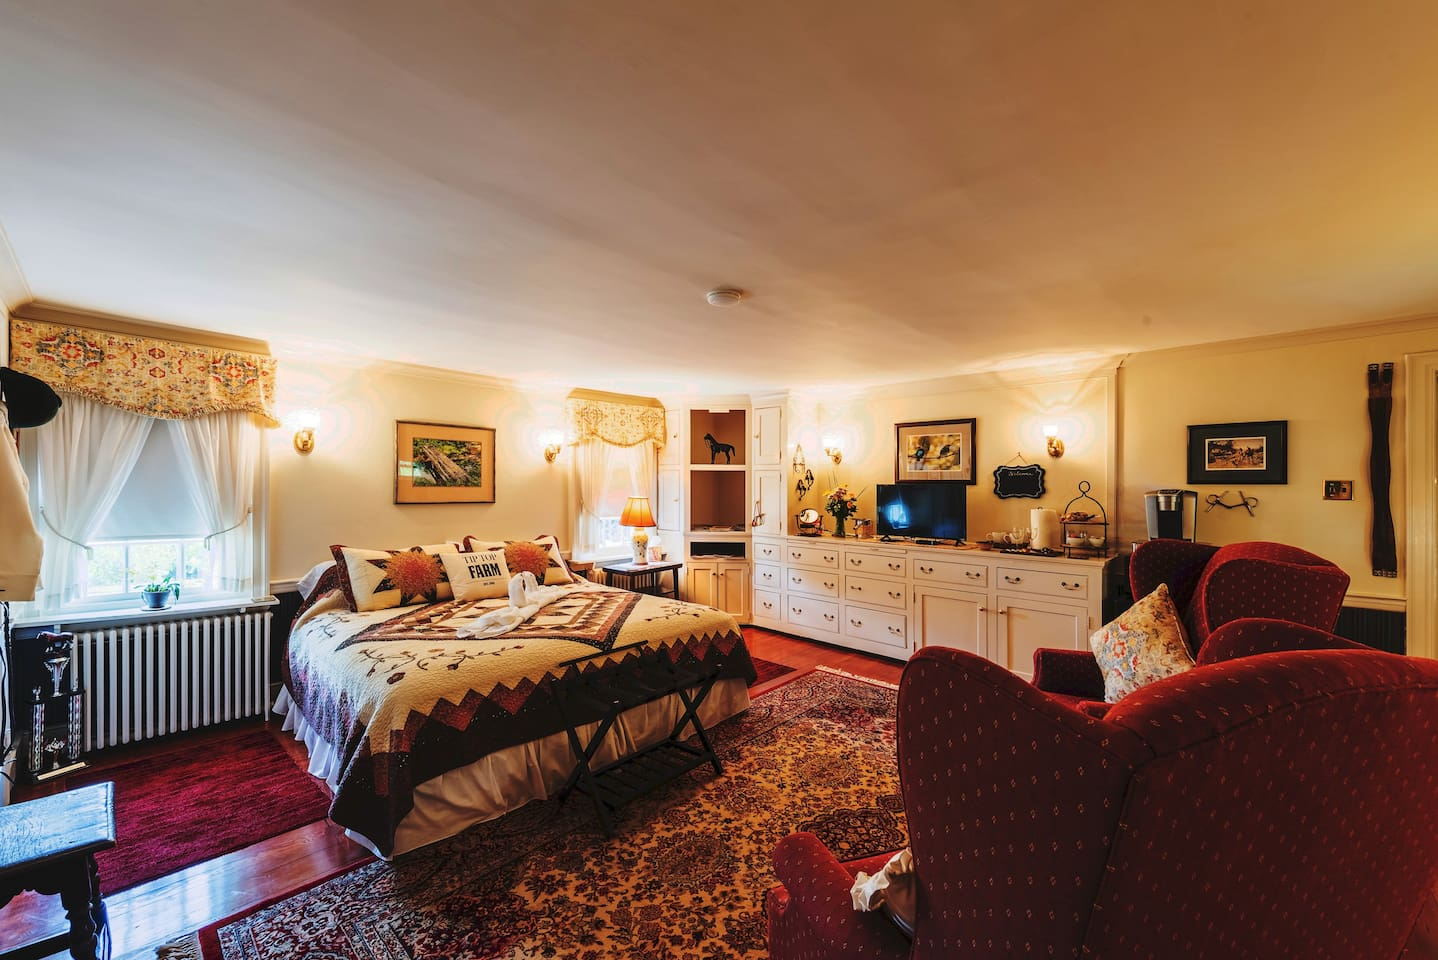 Tally-Ho, our newly renovated Spacious 430 square foot Bedroom Suite with King Size Bed, Two Large Walk-in Closets,  built-in Bureau, expansive Sitting Area, three bright Windows, desk area and an En-suite Marble Spa Bathroom with Kohler whirlpool.